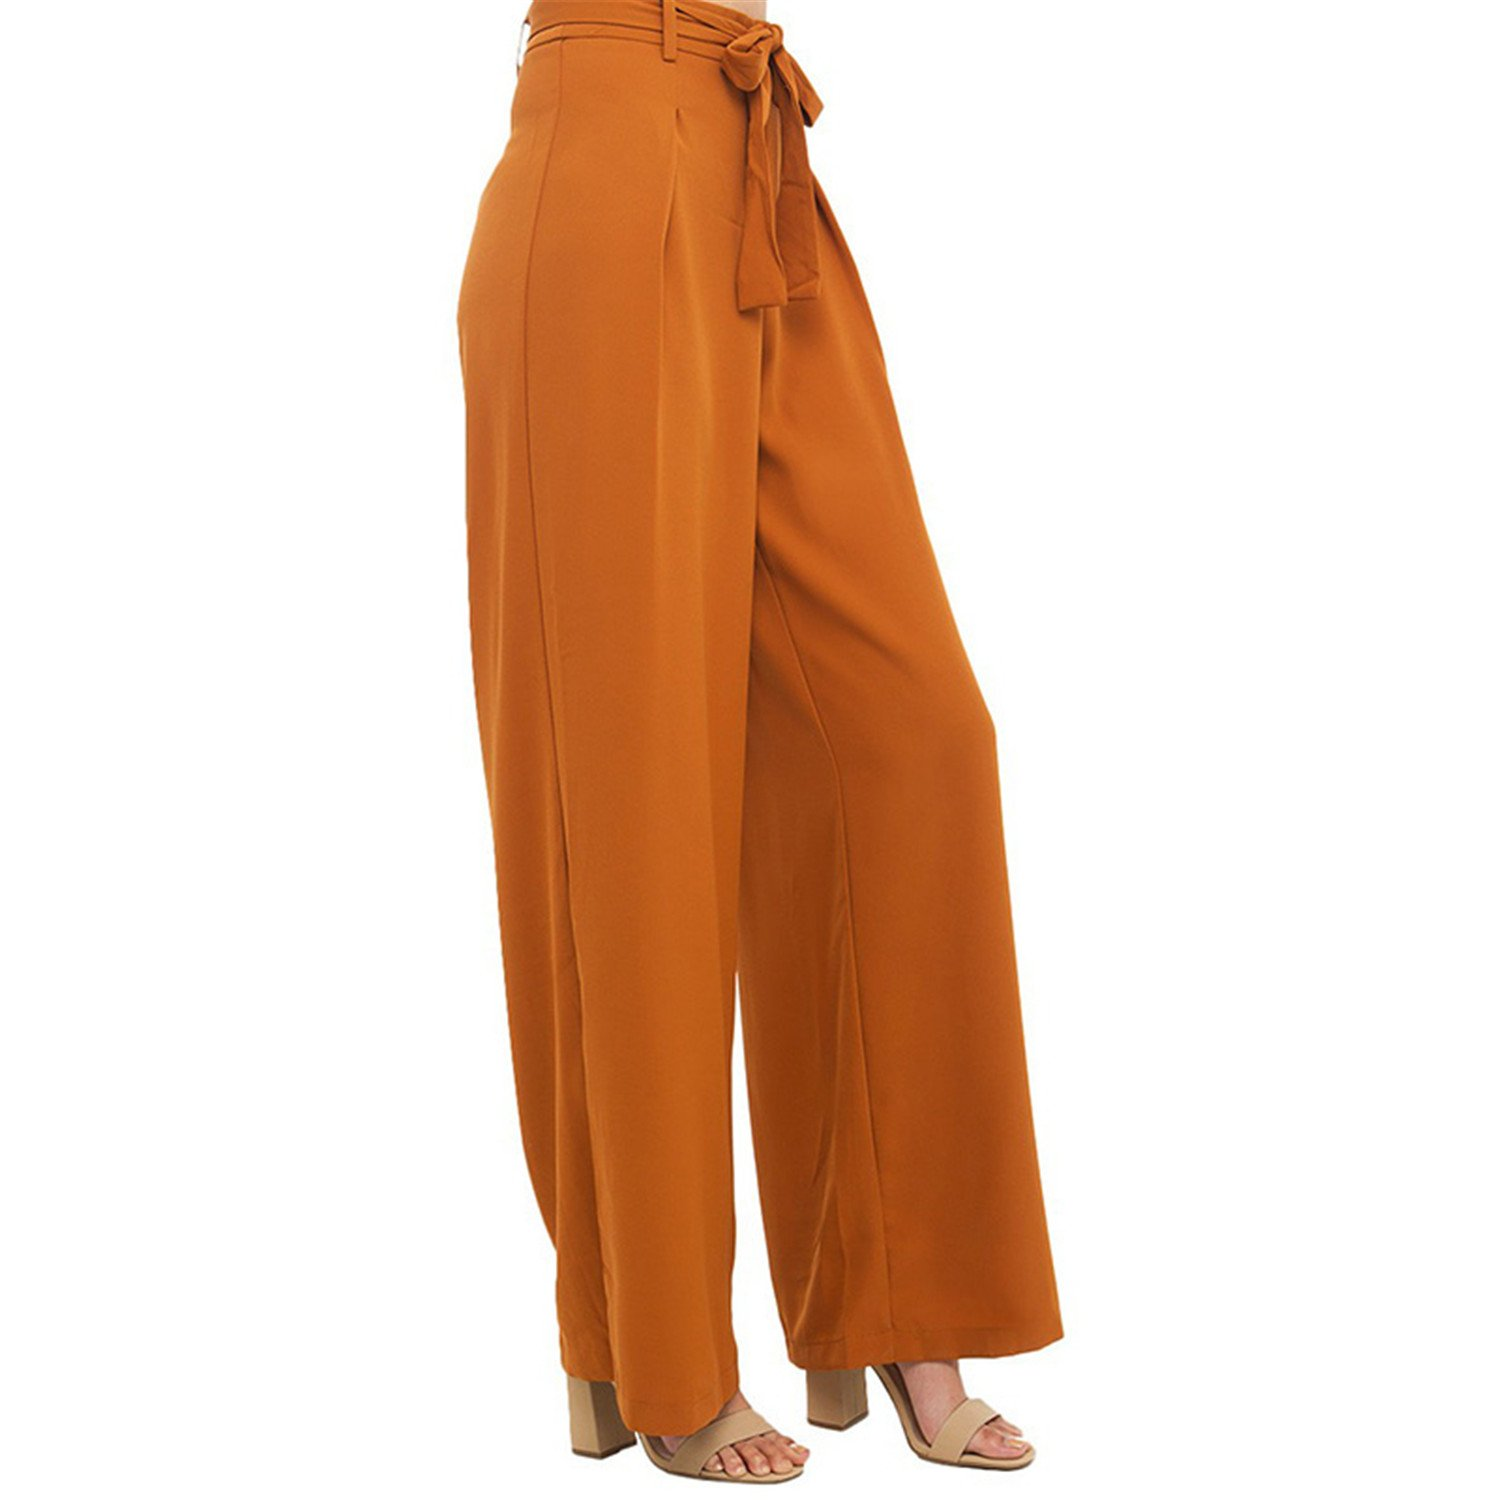 Willie Marlow Womens Orange Empire Waist Wide Leg Pant Elegant Comfort Lace-up Trousers Loose Casual Drawstring Pleated Pants